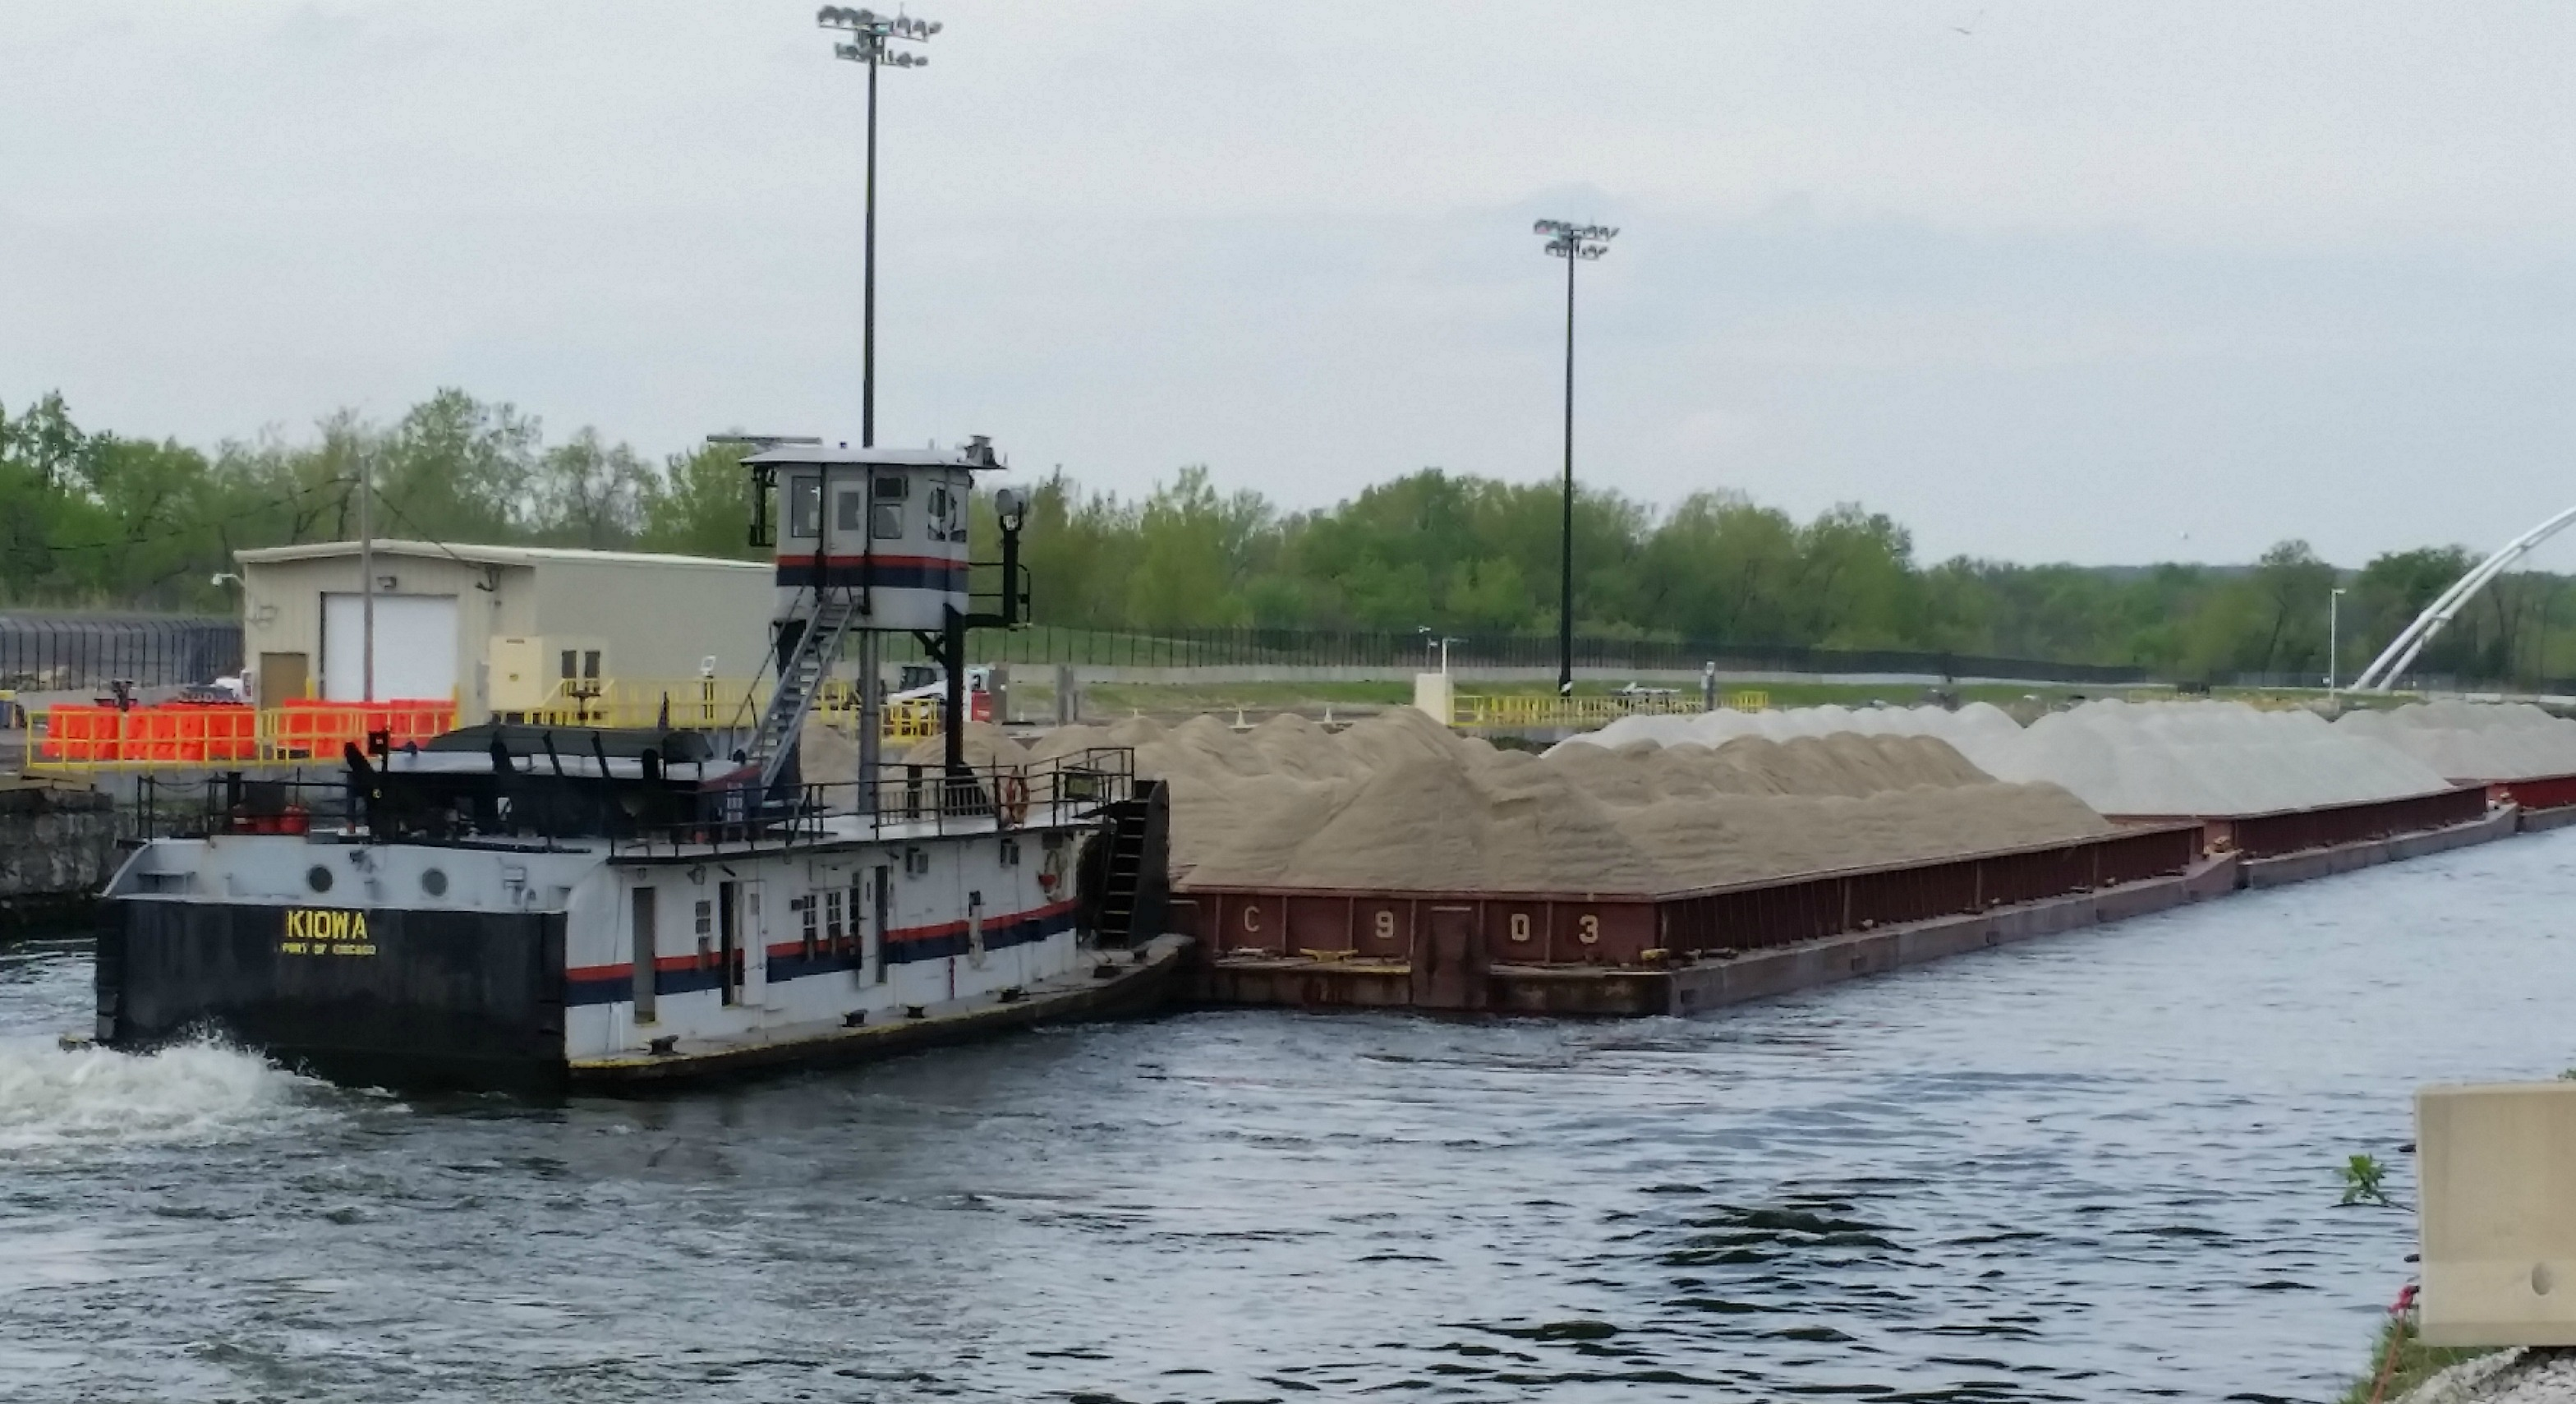 Caption: Kiowa pushes barges over electric carp barrier , Credit: Chuck Quirmbach